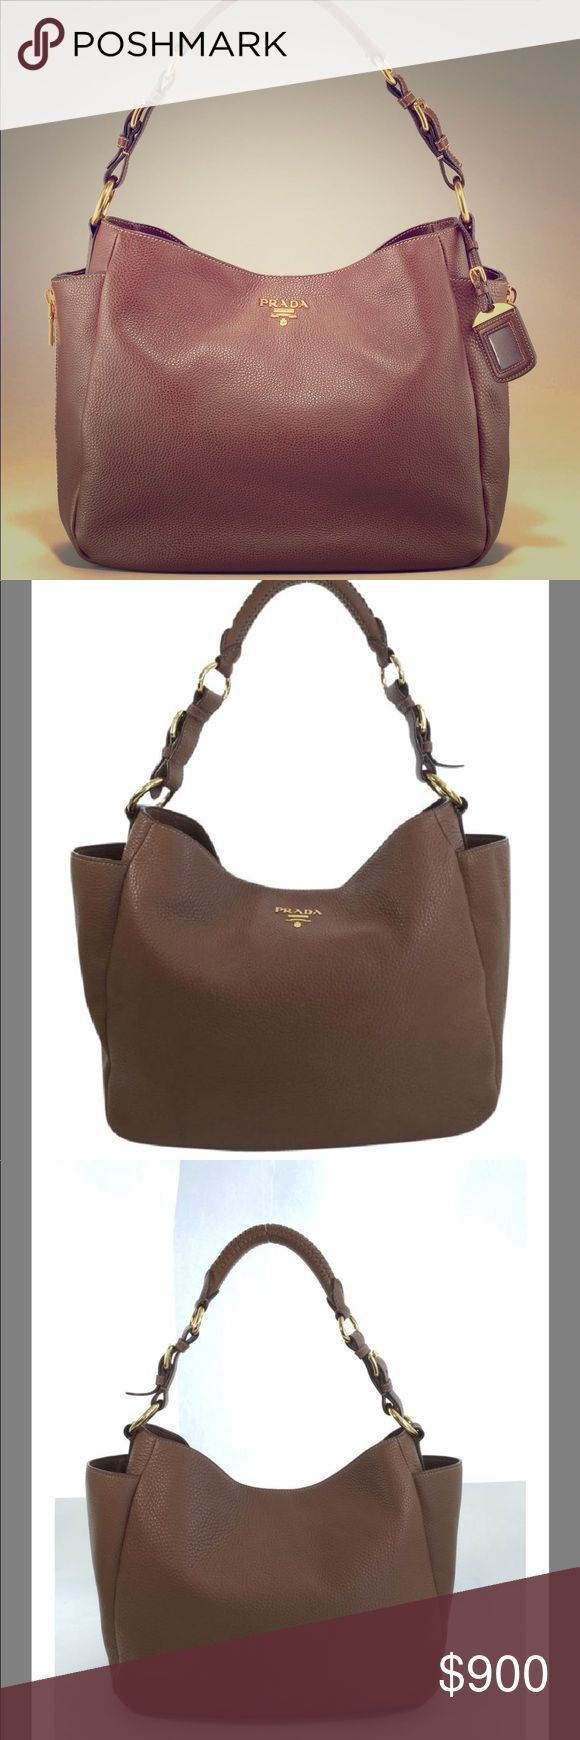 2754848f7d49 PRADA Diano Vitelo Pebbled Leather Hobo bag Gorgeous preowned bag. 100%  Authentic. Pebbled